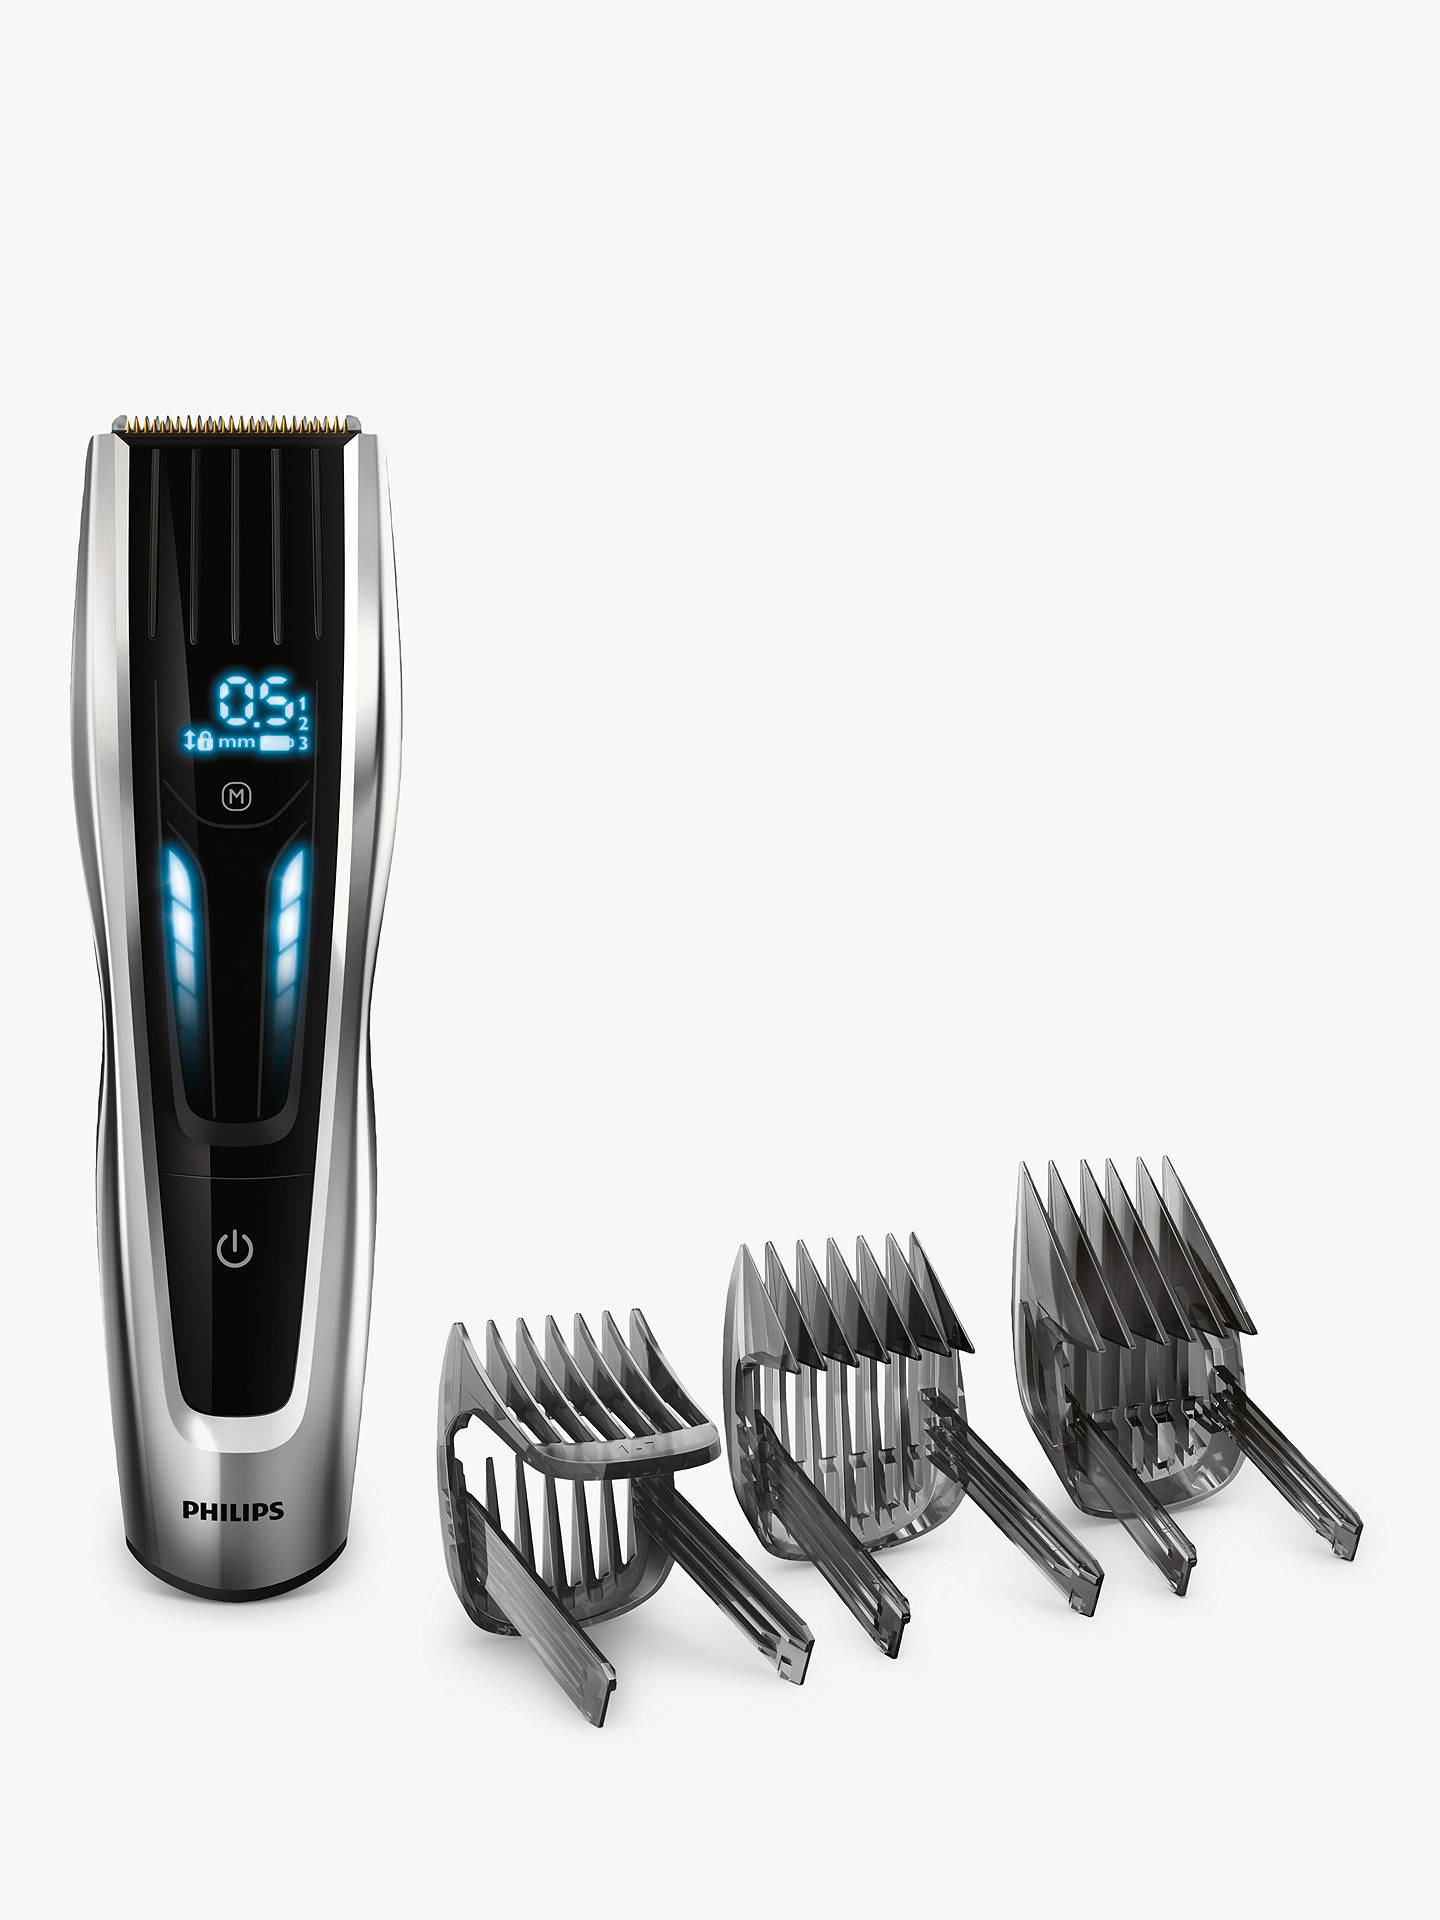 BuyPhilips HC9450/13 Series 9000 Hair Clipper with 400 Length Settings, Black/Silver ...